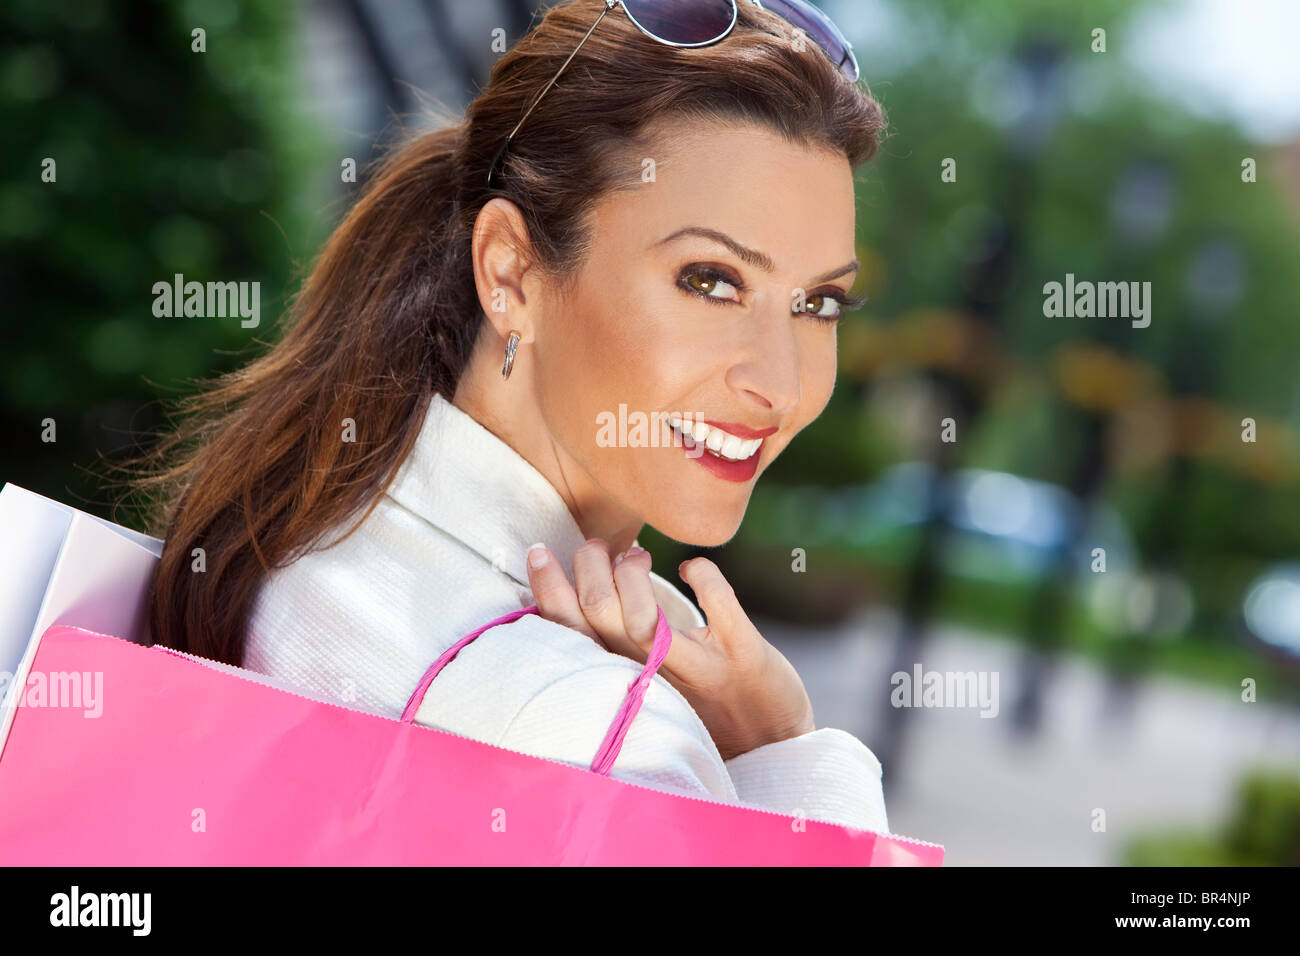 Beautiful, happy and fashionable woman with colorful pink and white shopping bags - Stock Image